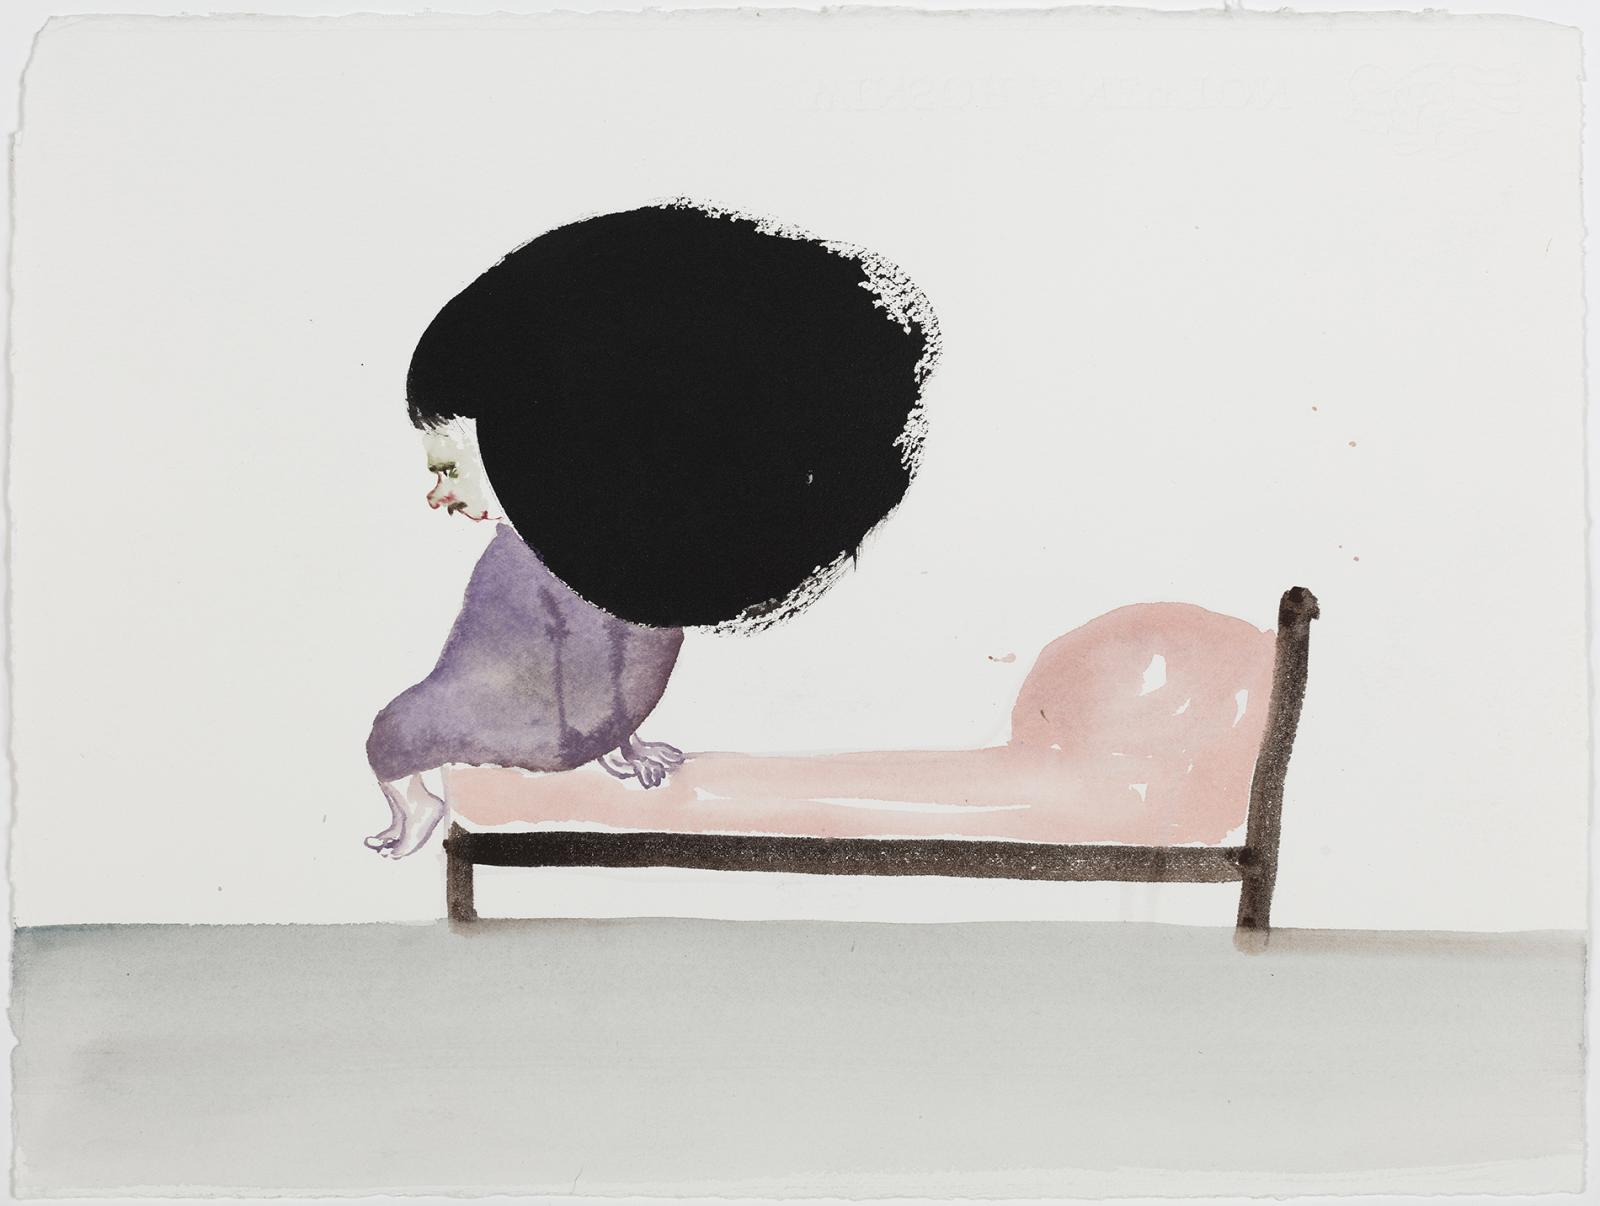 Sanya Kantarovsky,/Dick Bed/, 2020, Watercolor and ink on Arches, 28.6 x  37.5 cm